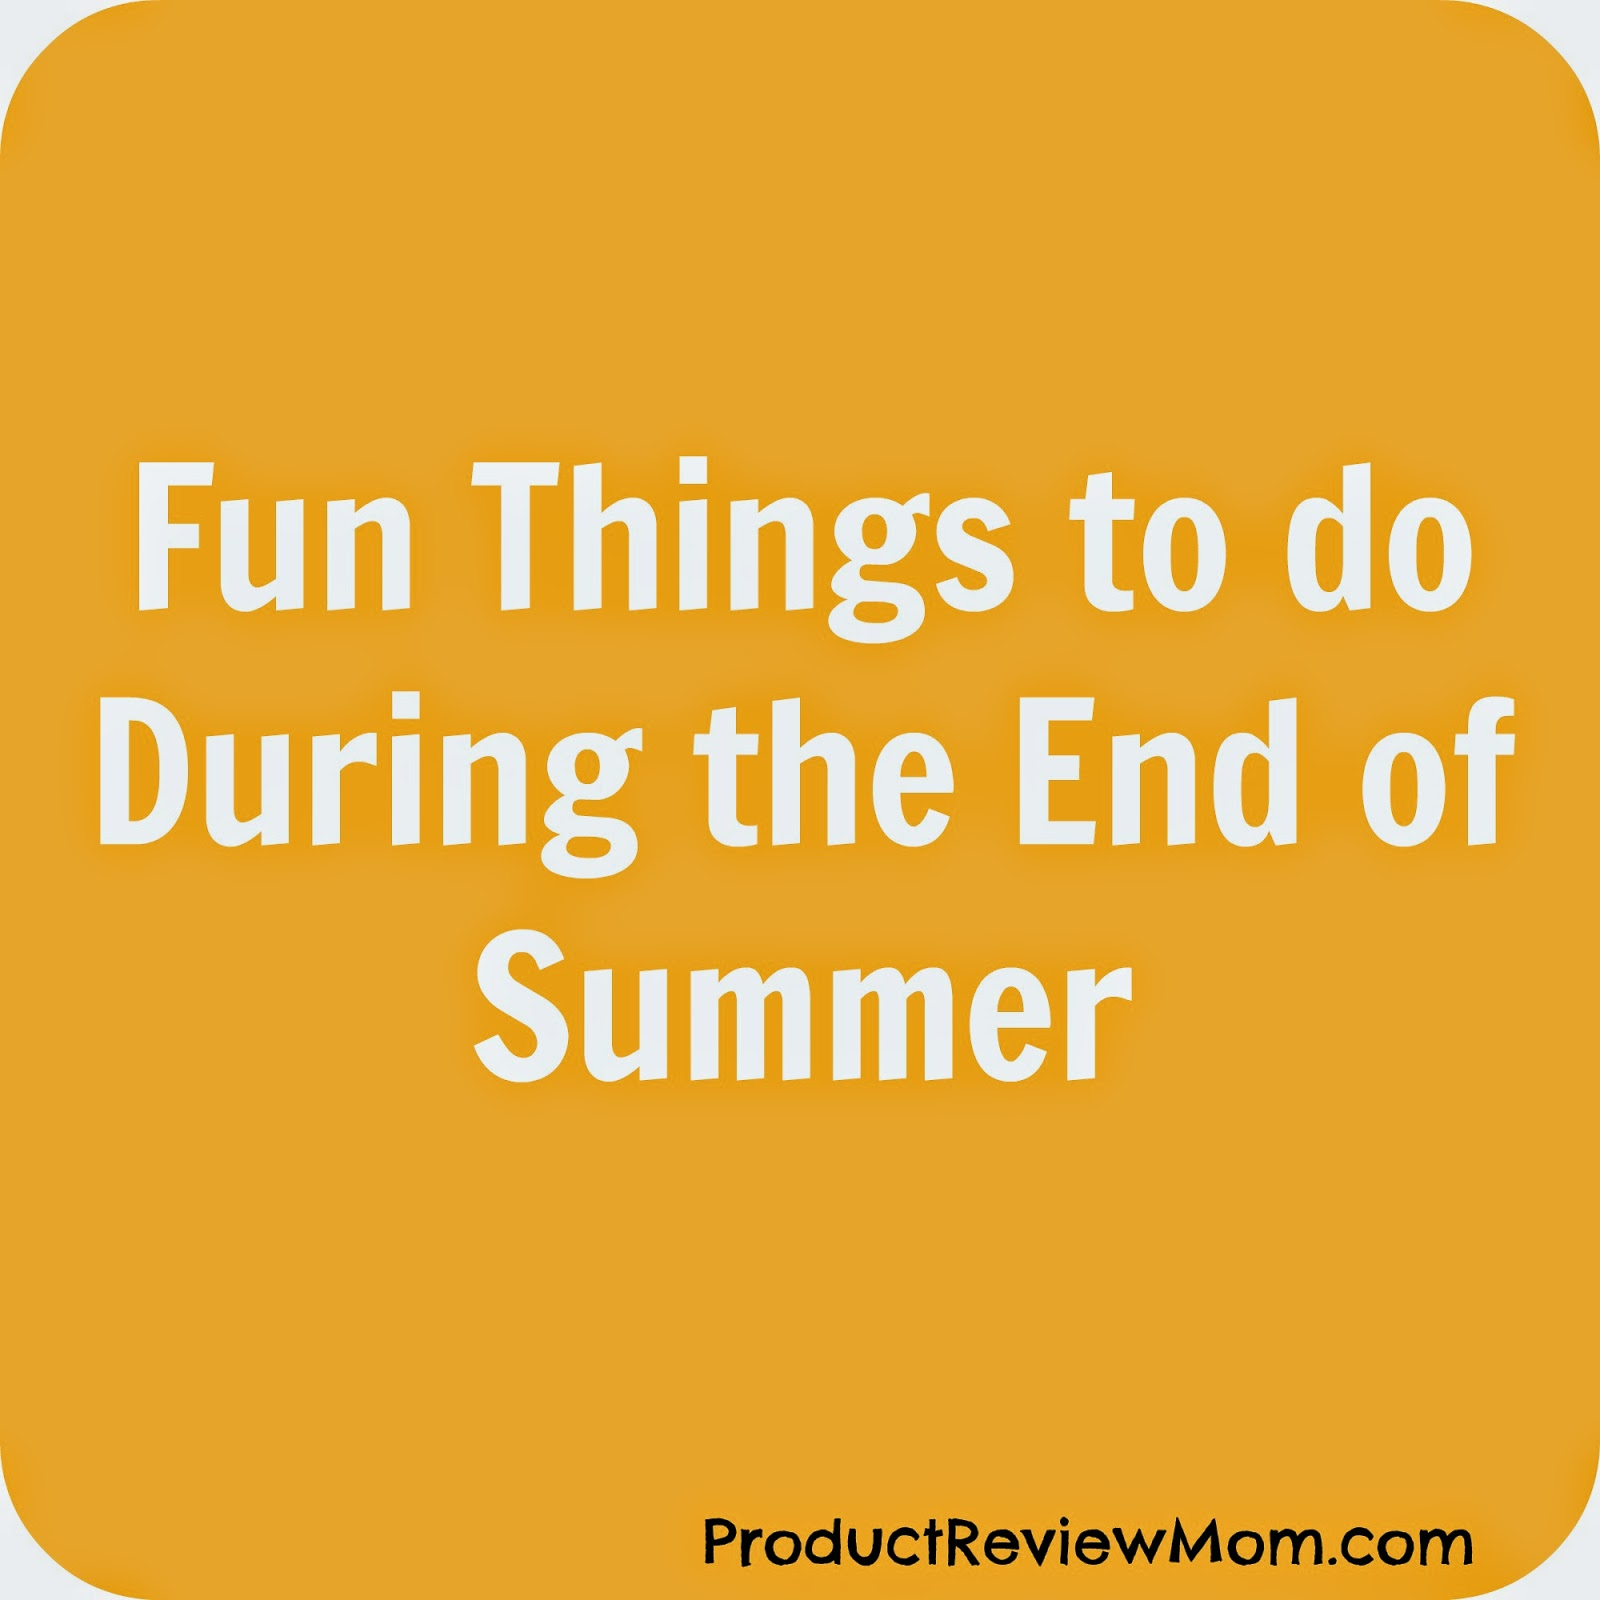 Fun Things to do During the End of Summer (Summer Blog Series) #summerfun via ProductReviewMom.com